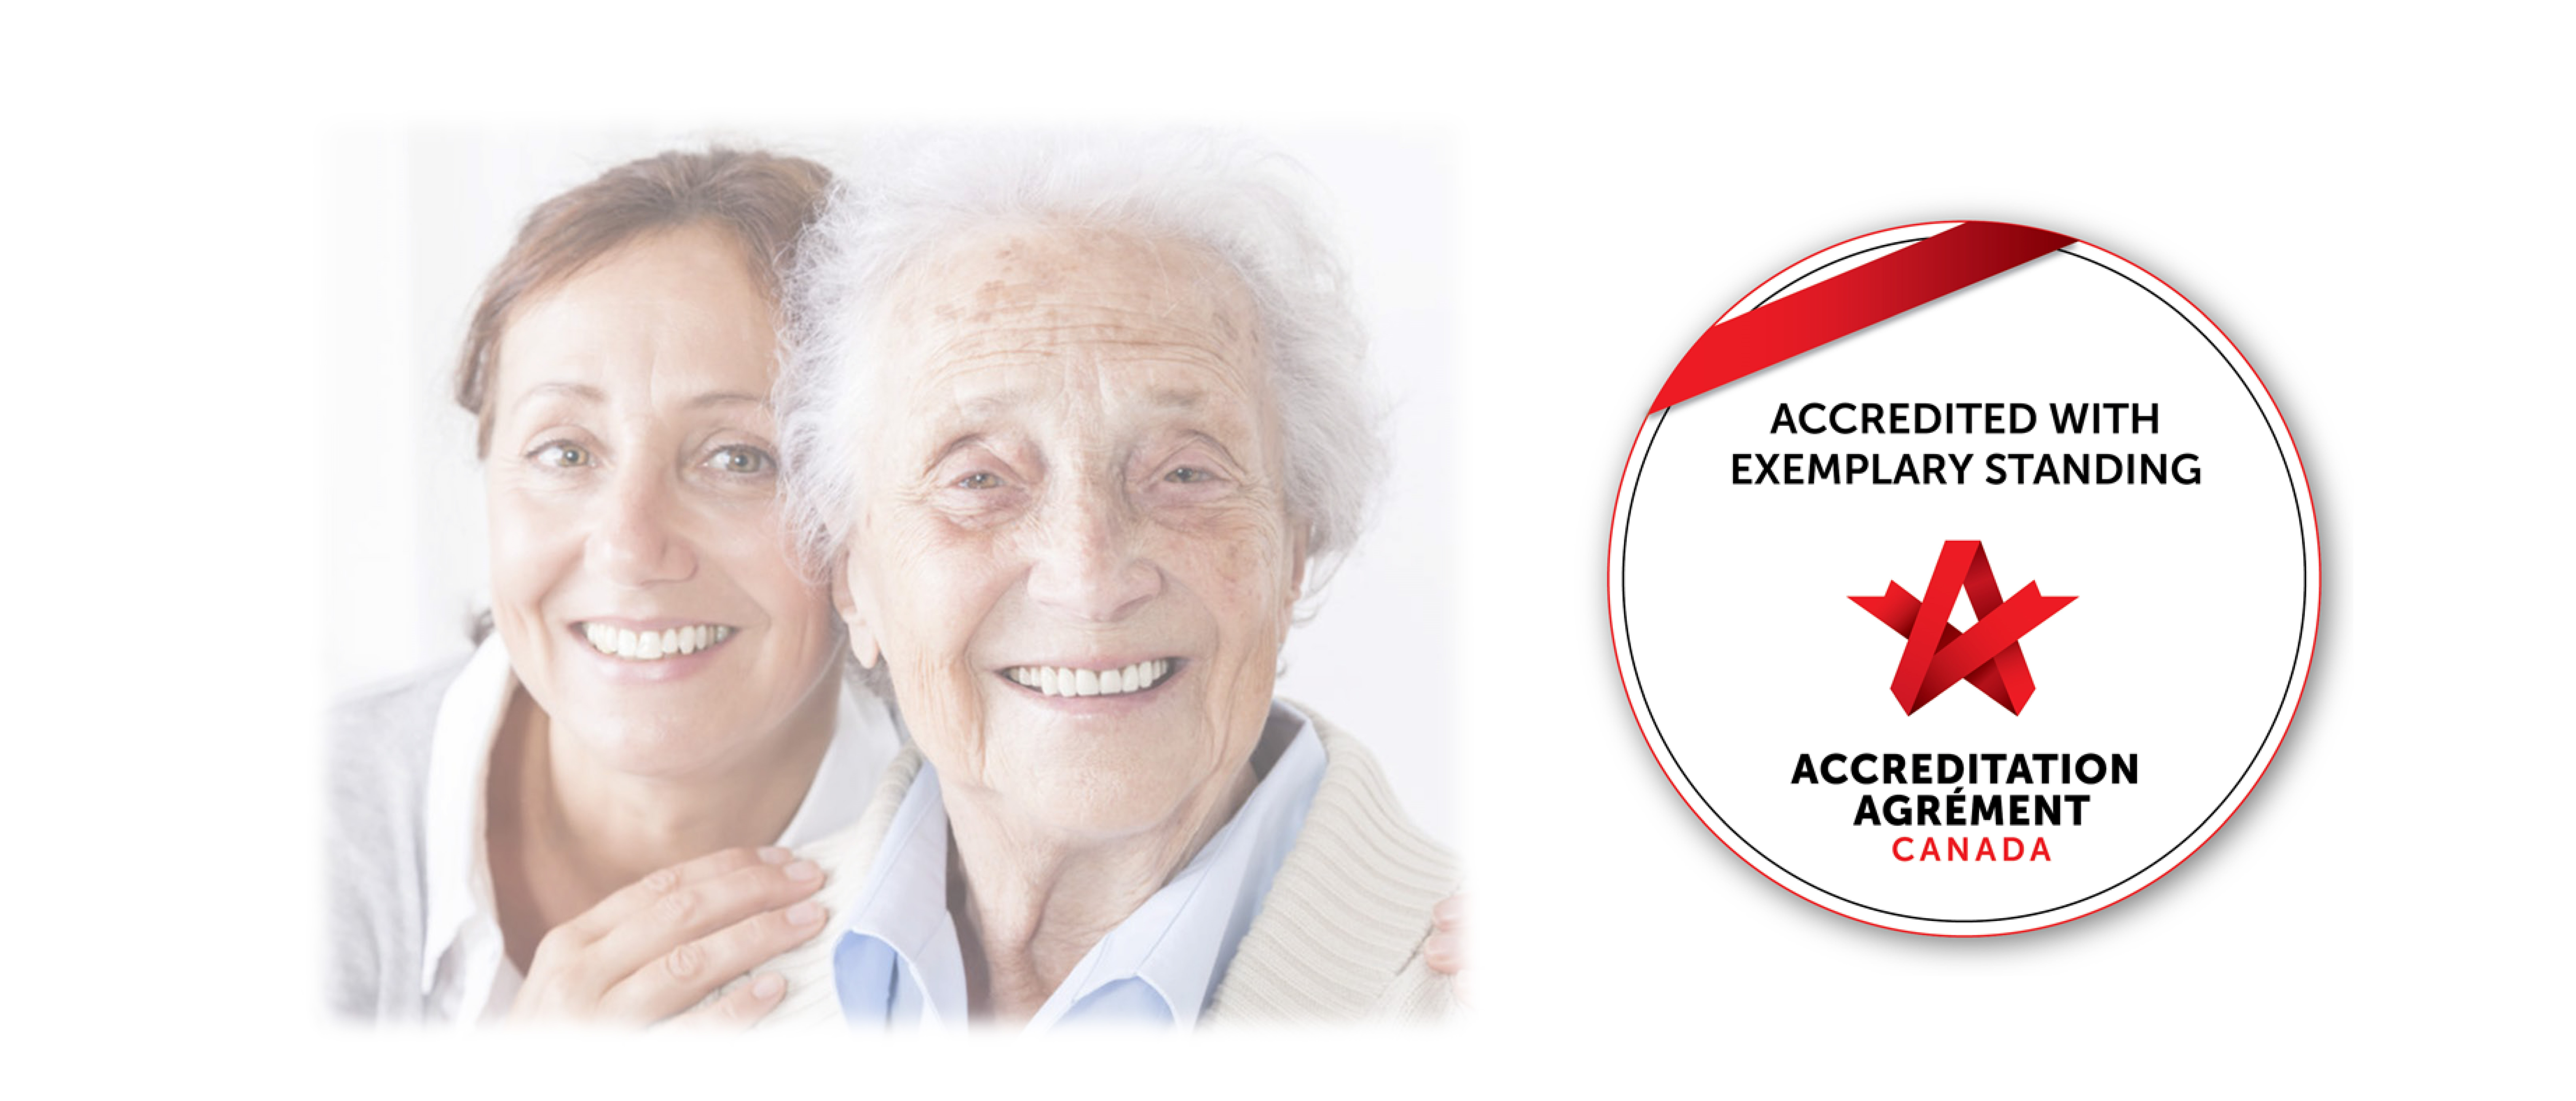 Banner with an image of senior and young woman next to Accreditation Canada logo